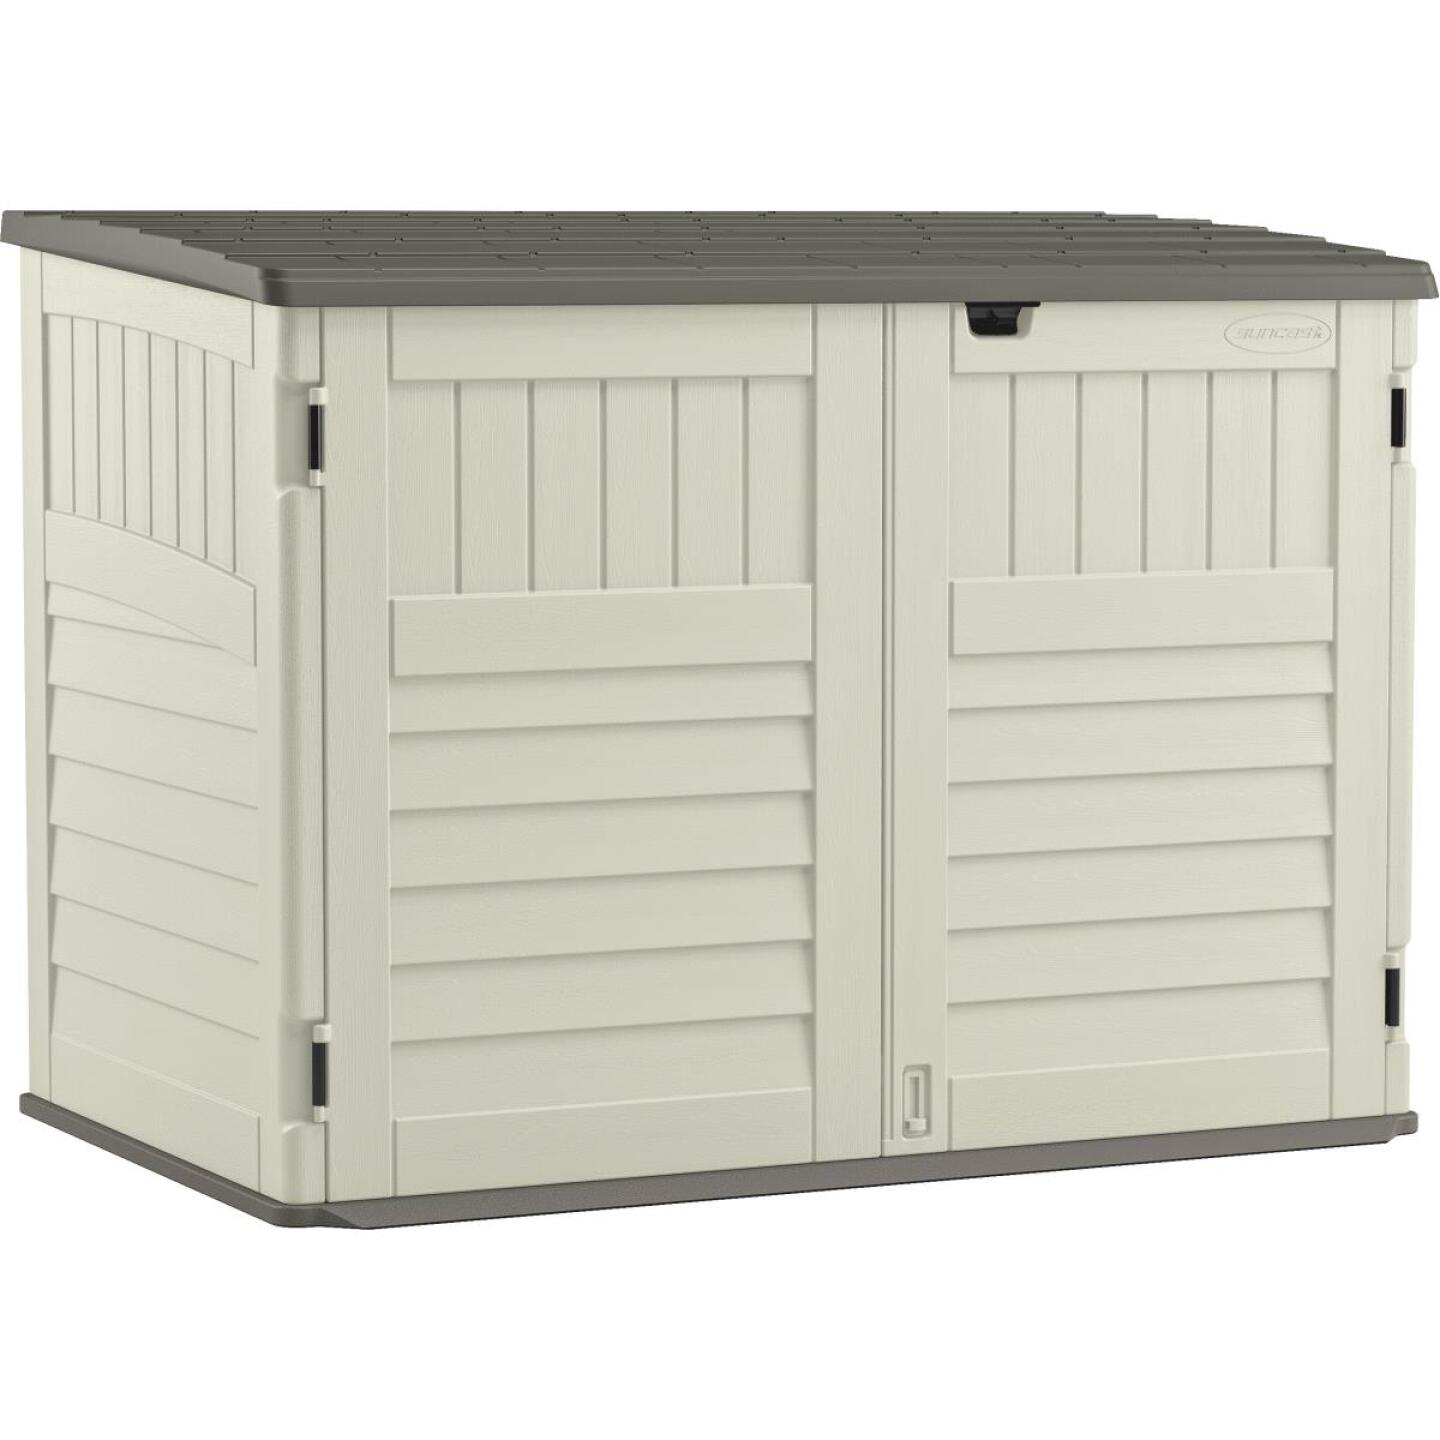 Suncast Stow-Away 70 Cu. Ft. Horizontal Storage Shed Image 1